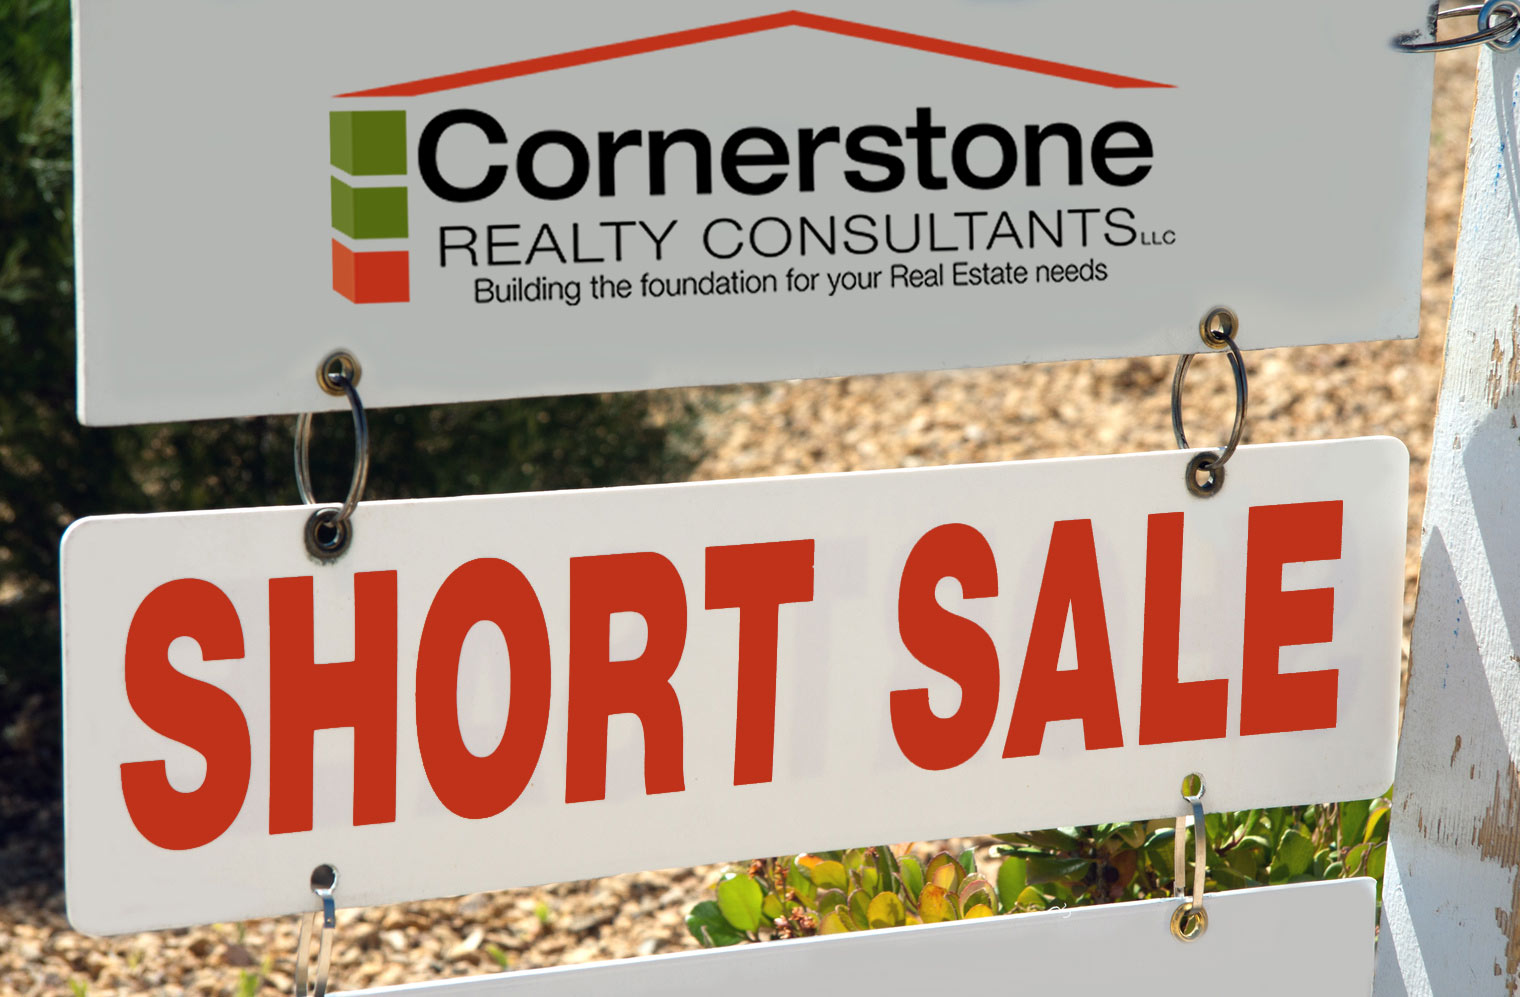 Find cheap houses with short sale - How to build a cheap house handy solutions ...